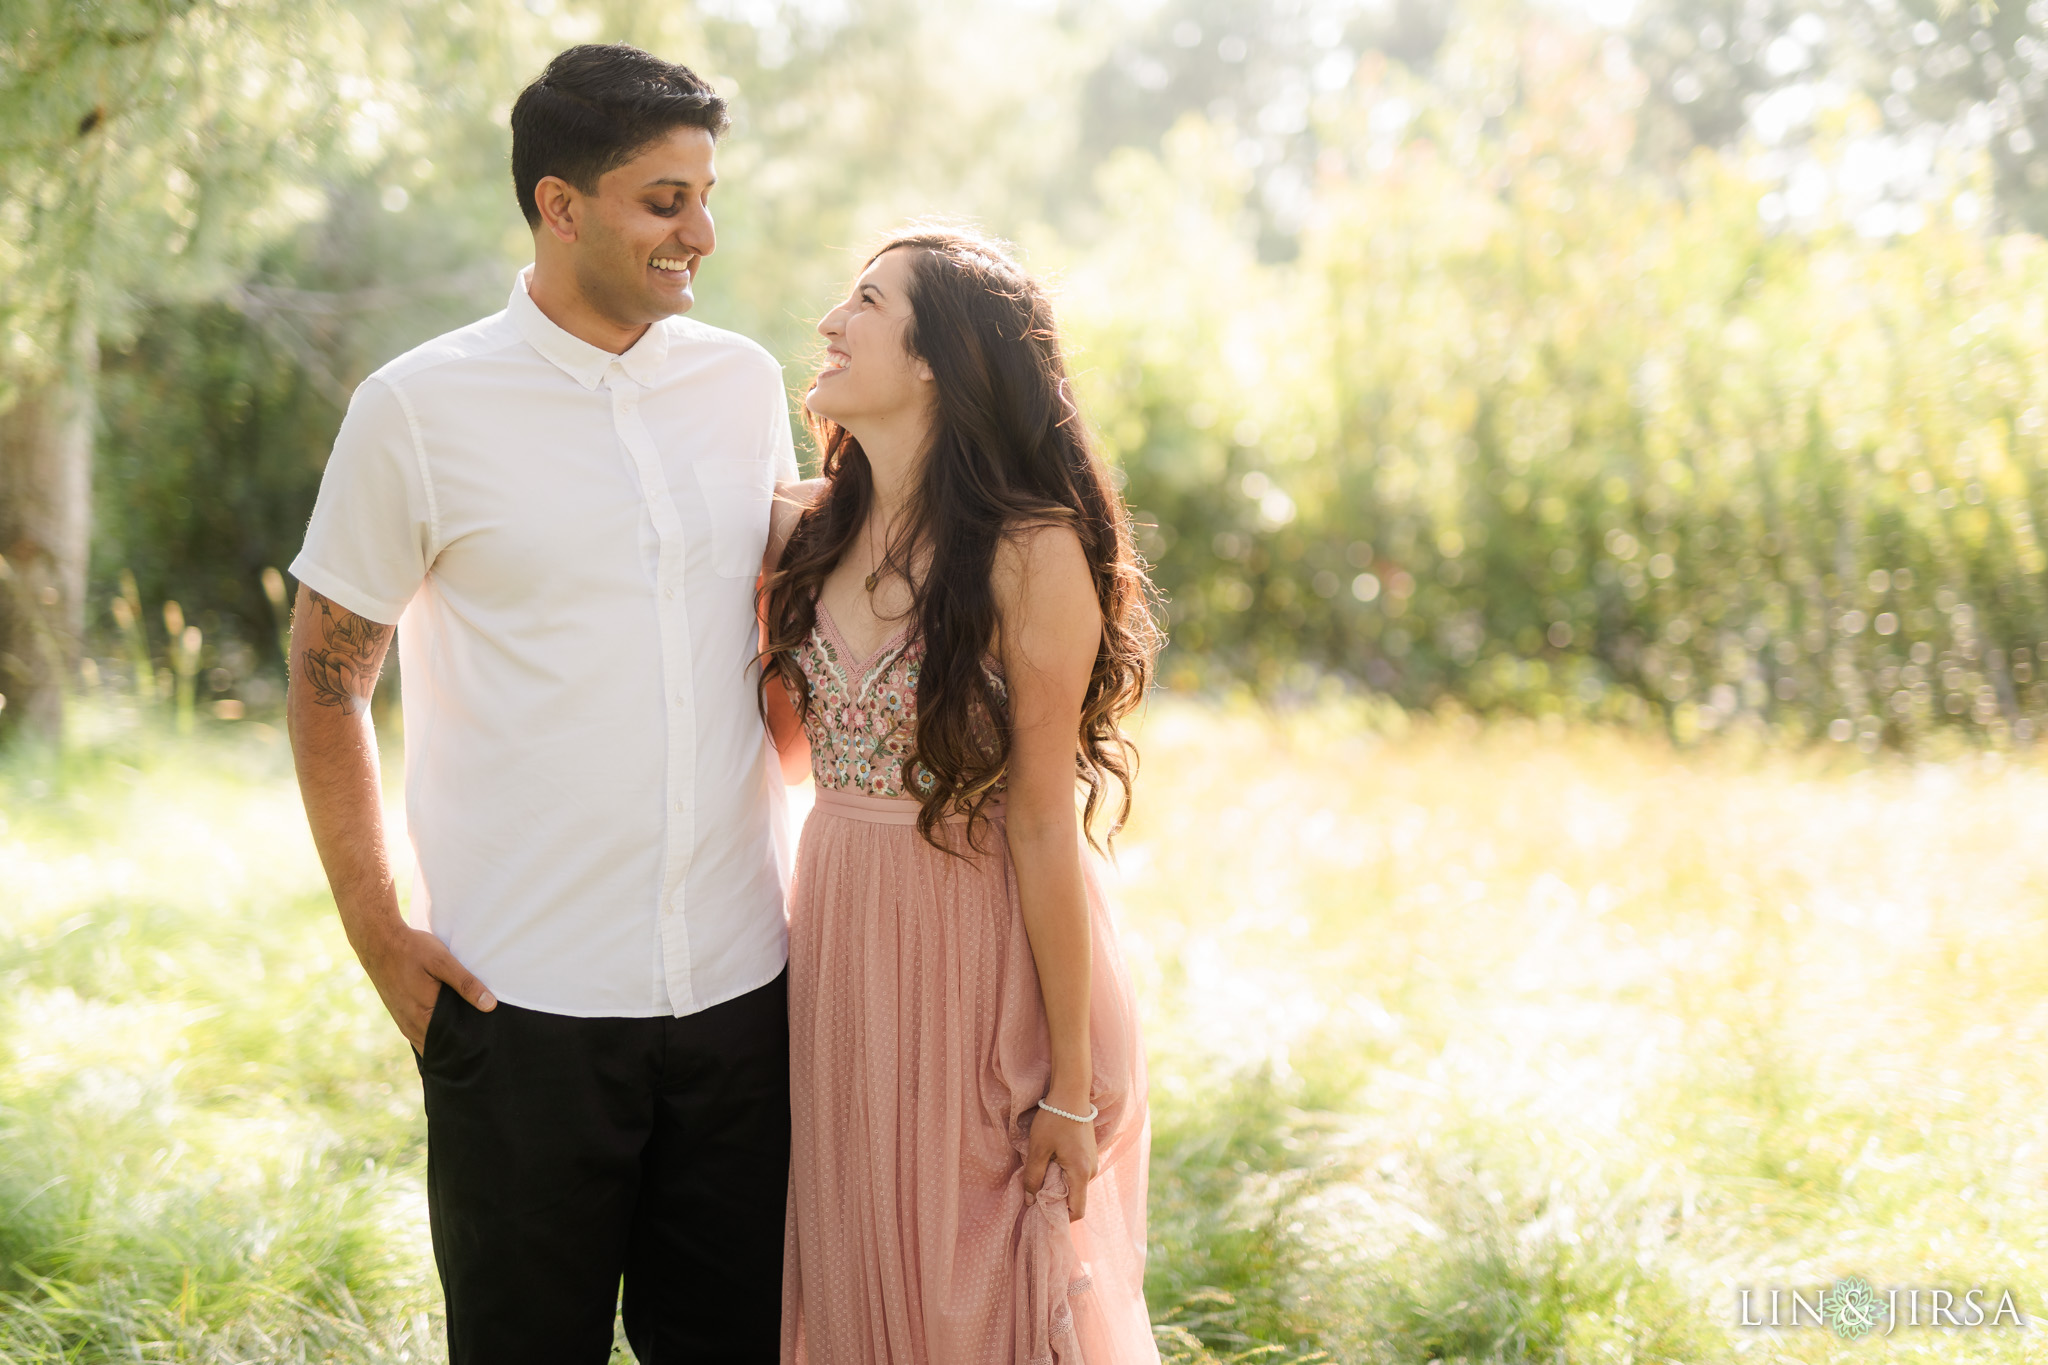 zbb Jeffrey Open Space Orange County Engagement Photography